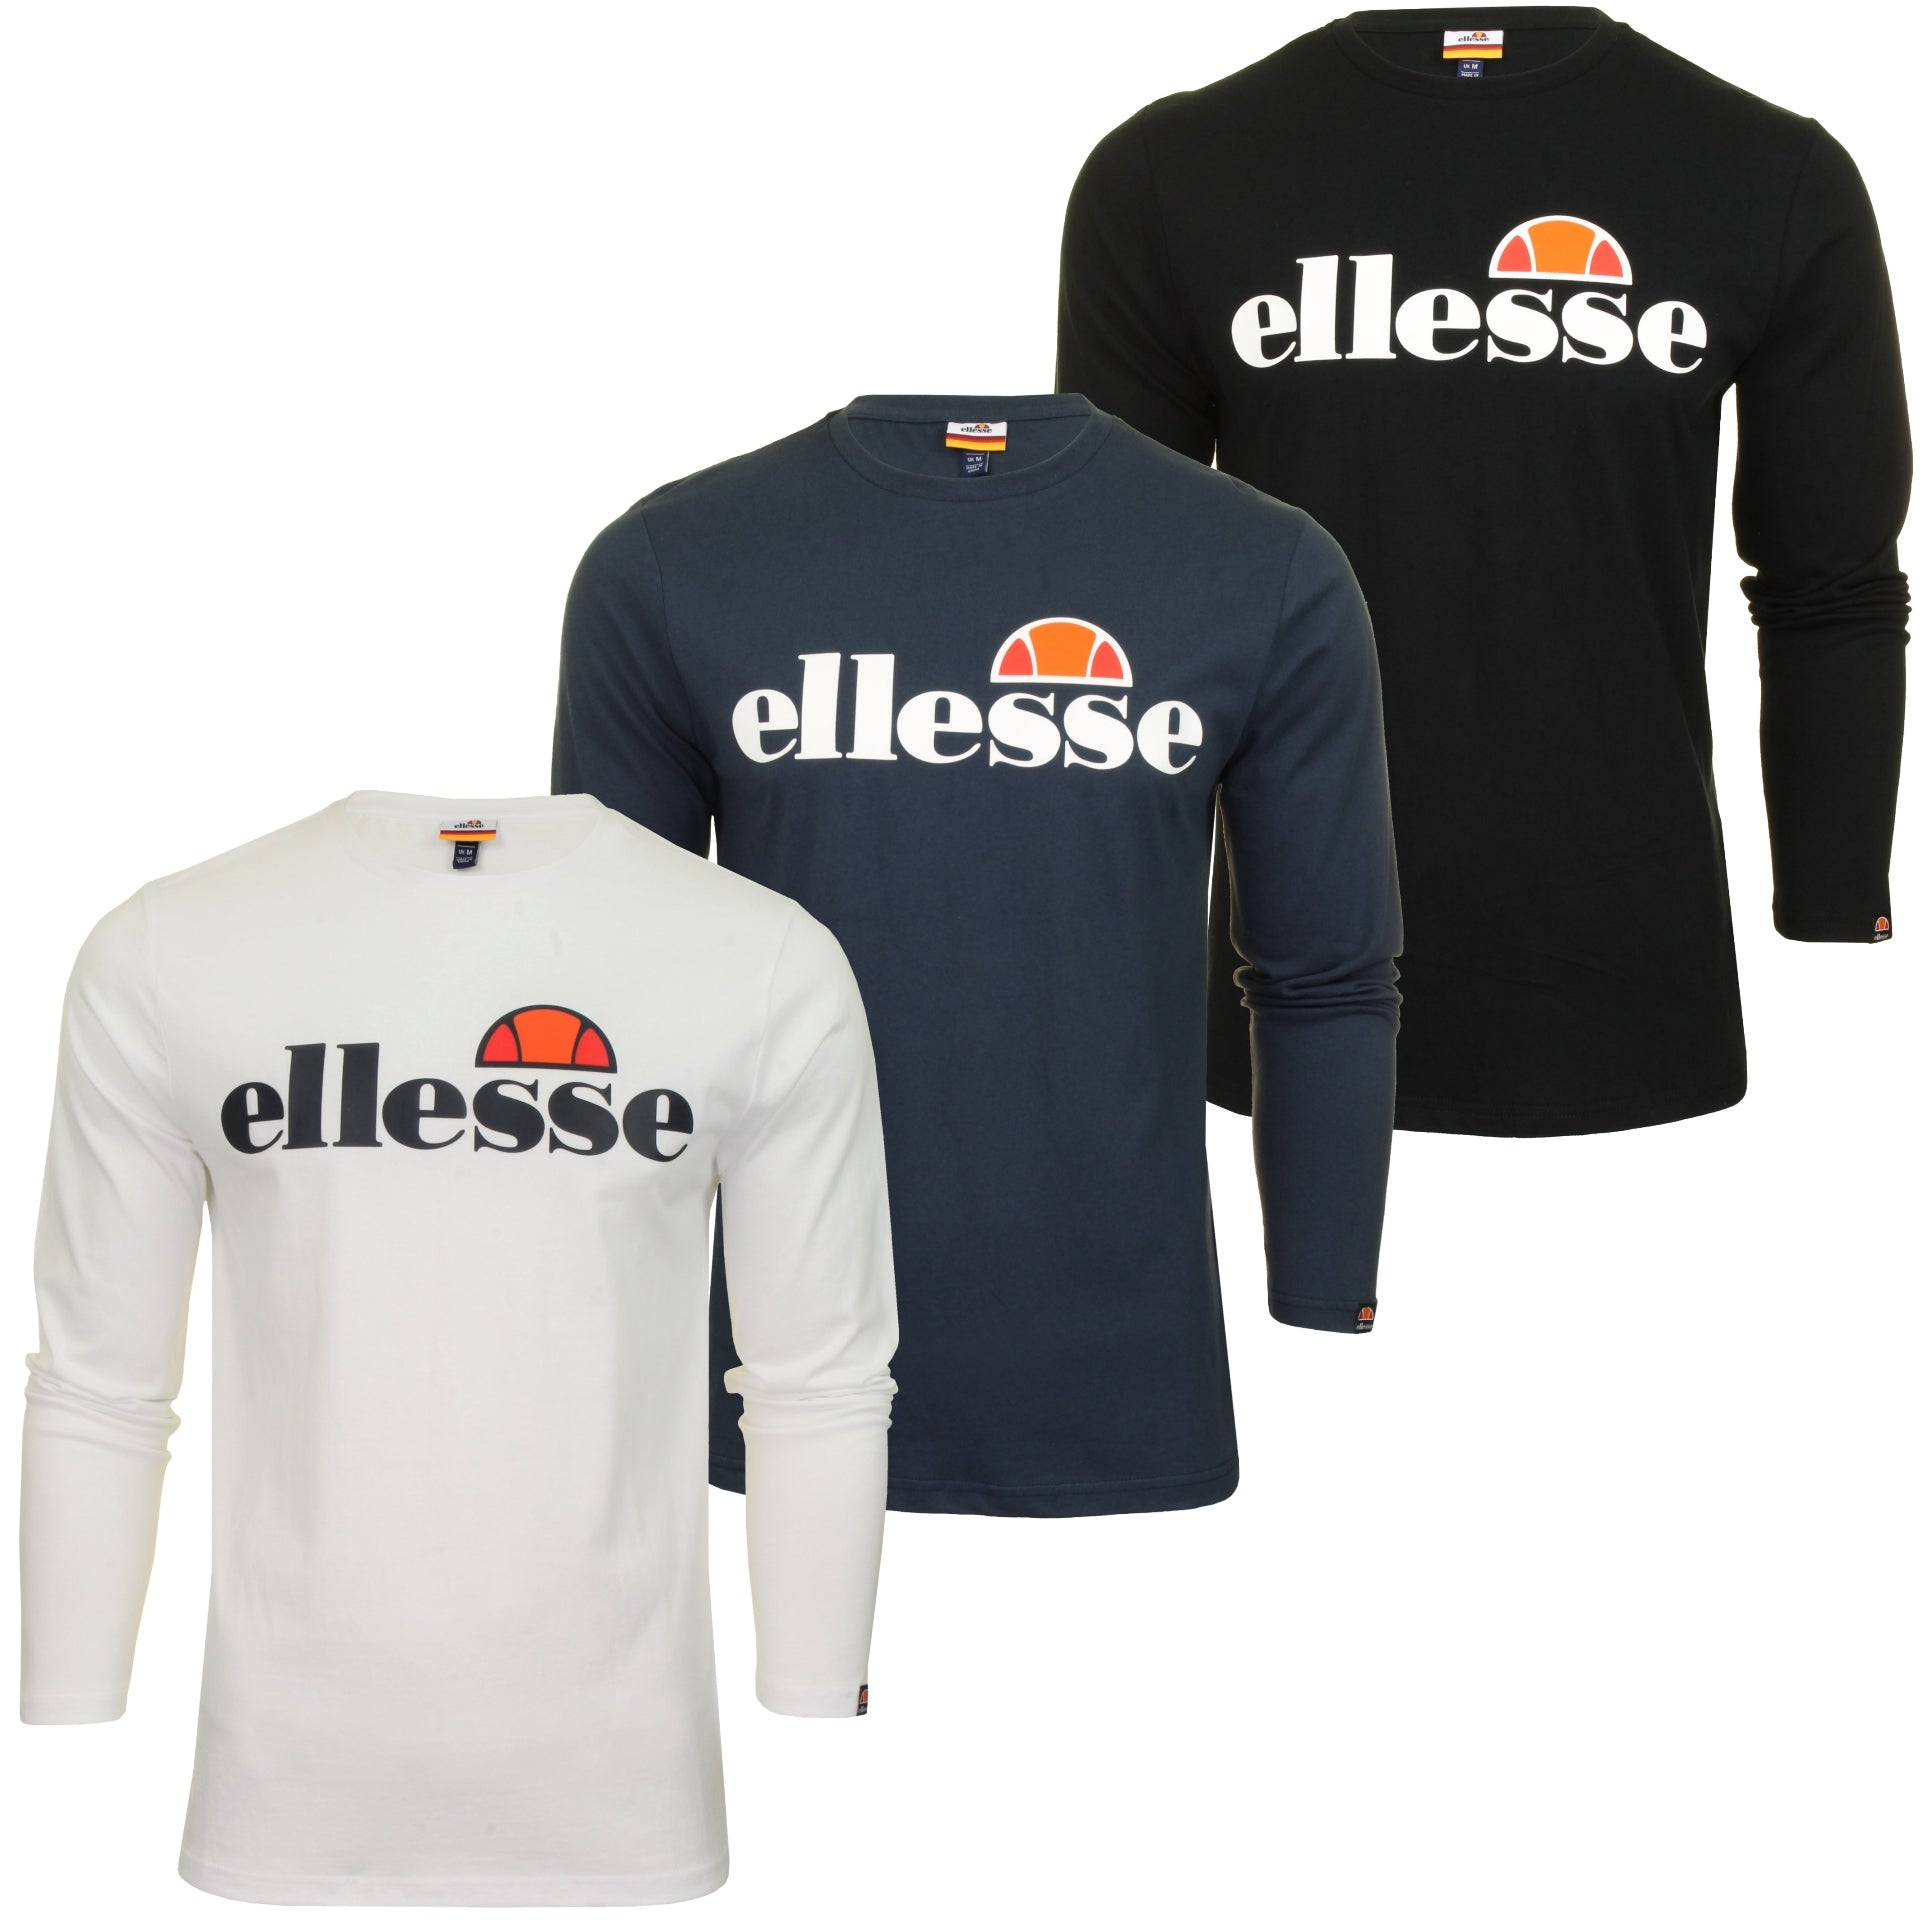 Ellesse Mens Logo Front Crew Neck T-Shirt 'GRAZIE' - Long Sleeved-Main Image